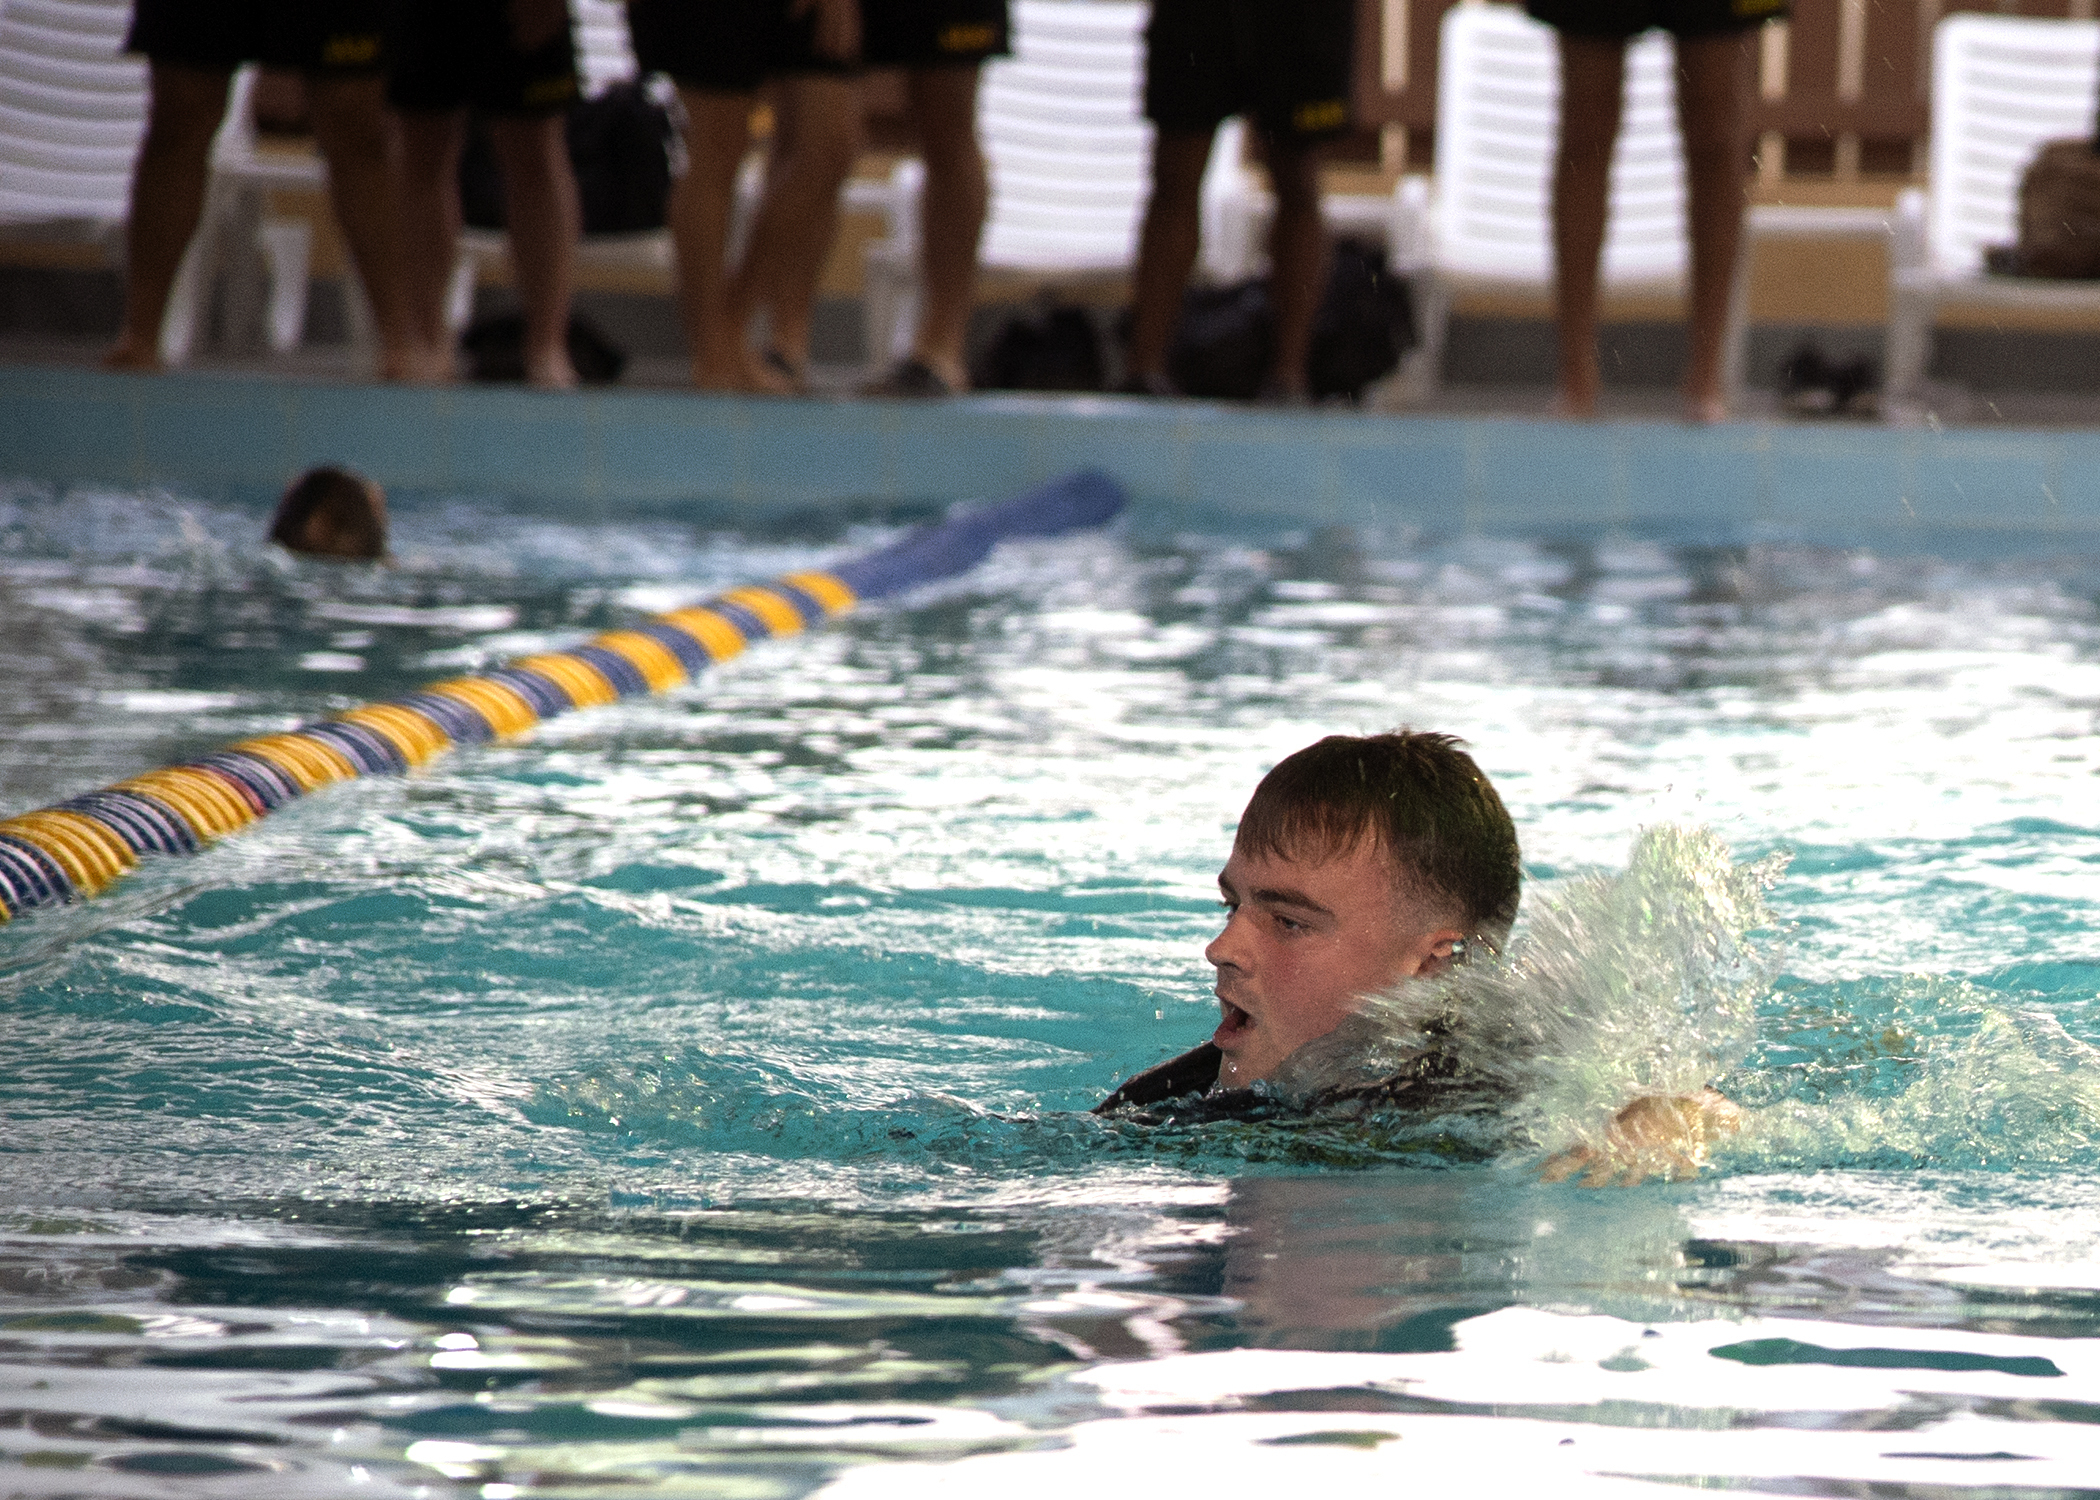 U.S. Army Spc. John Goldthorn, Headquarters and Headquarters Company, 1-141st Infantry Regiment, Task Force Alamo, Texas National Guard, assigned to Combined Joint Task Force-Horn of Africa (CJTF-HOA), Djibouti, competes in a swim competition for the German Armed Forces Badge (GAFB) for Military Proficiency in Djibouti, Jan. 16, 2019. The GAFB is awarded to and worn by German service members of all ranks. Allied service members may also be awarded the badge, subject to their nations' uniform regulations. (U.S. Navy photo by Mass Communication Specialist 1st Class Nick Scott)